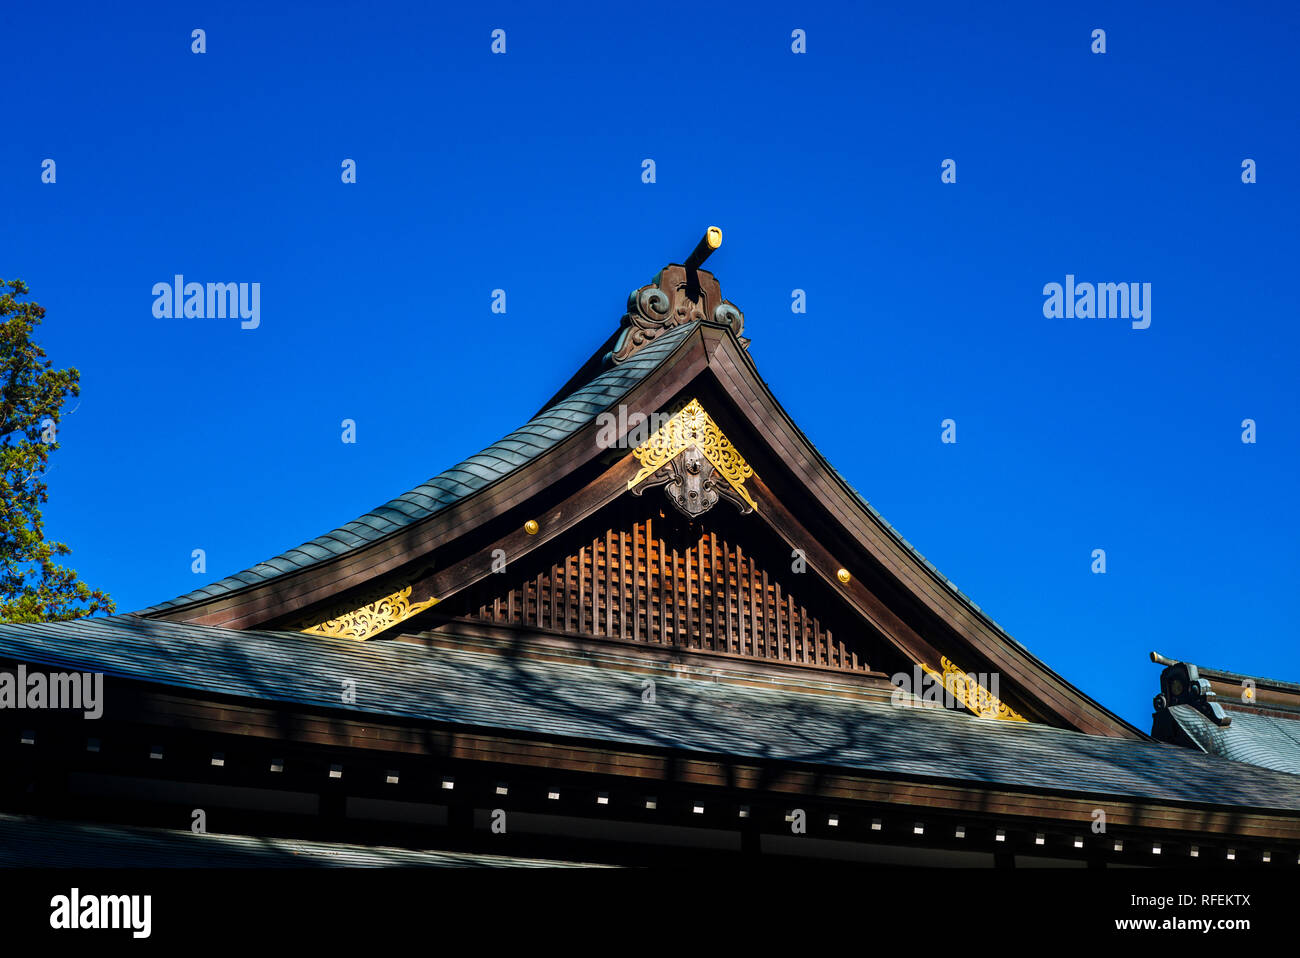 Ise Grand Shrine, Mie Prefecture, Japan: Roof detail - Stock Image